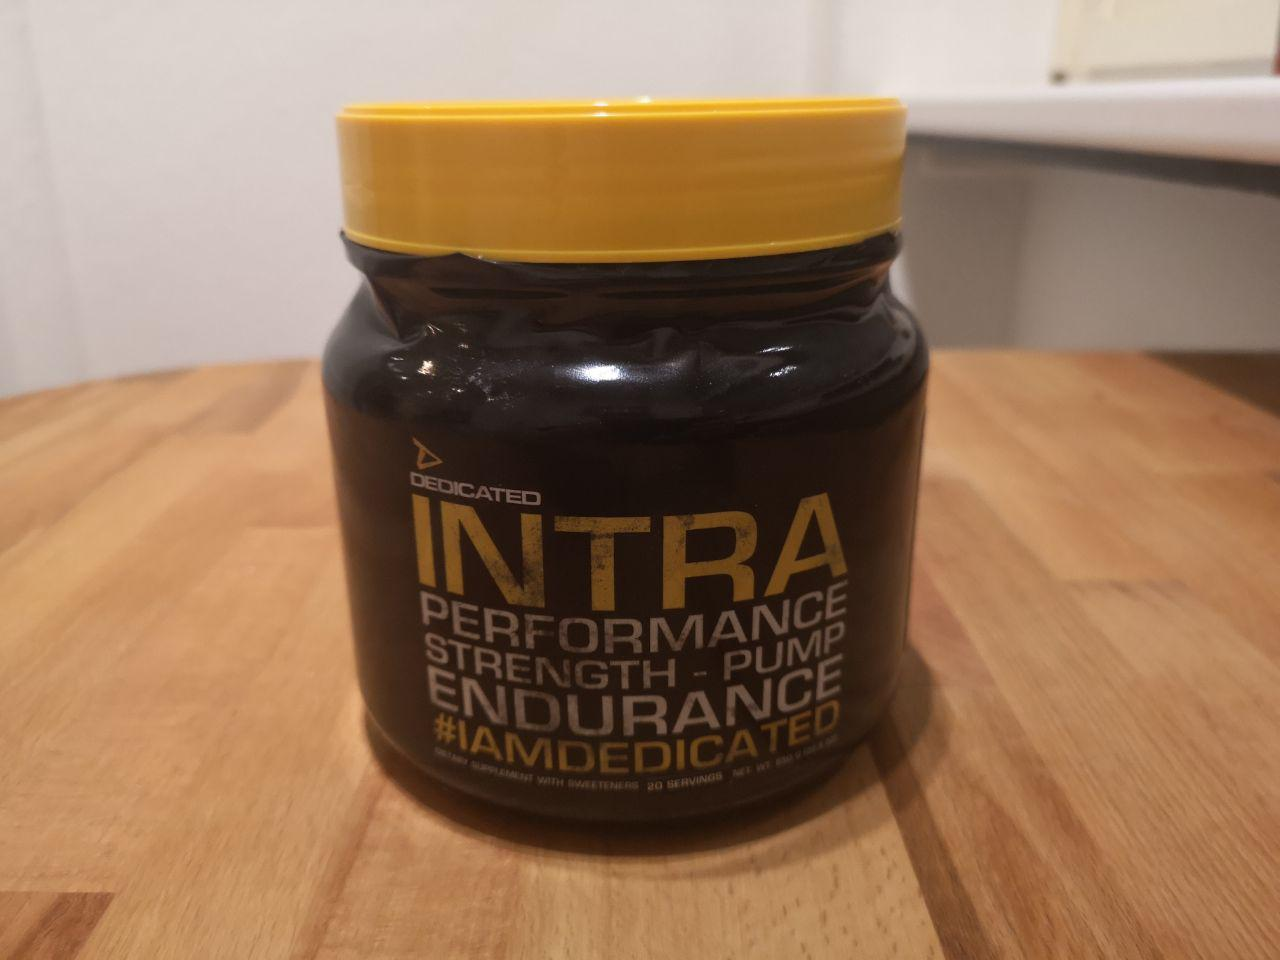 Intra von Dedicated Nutrition